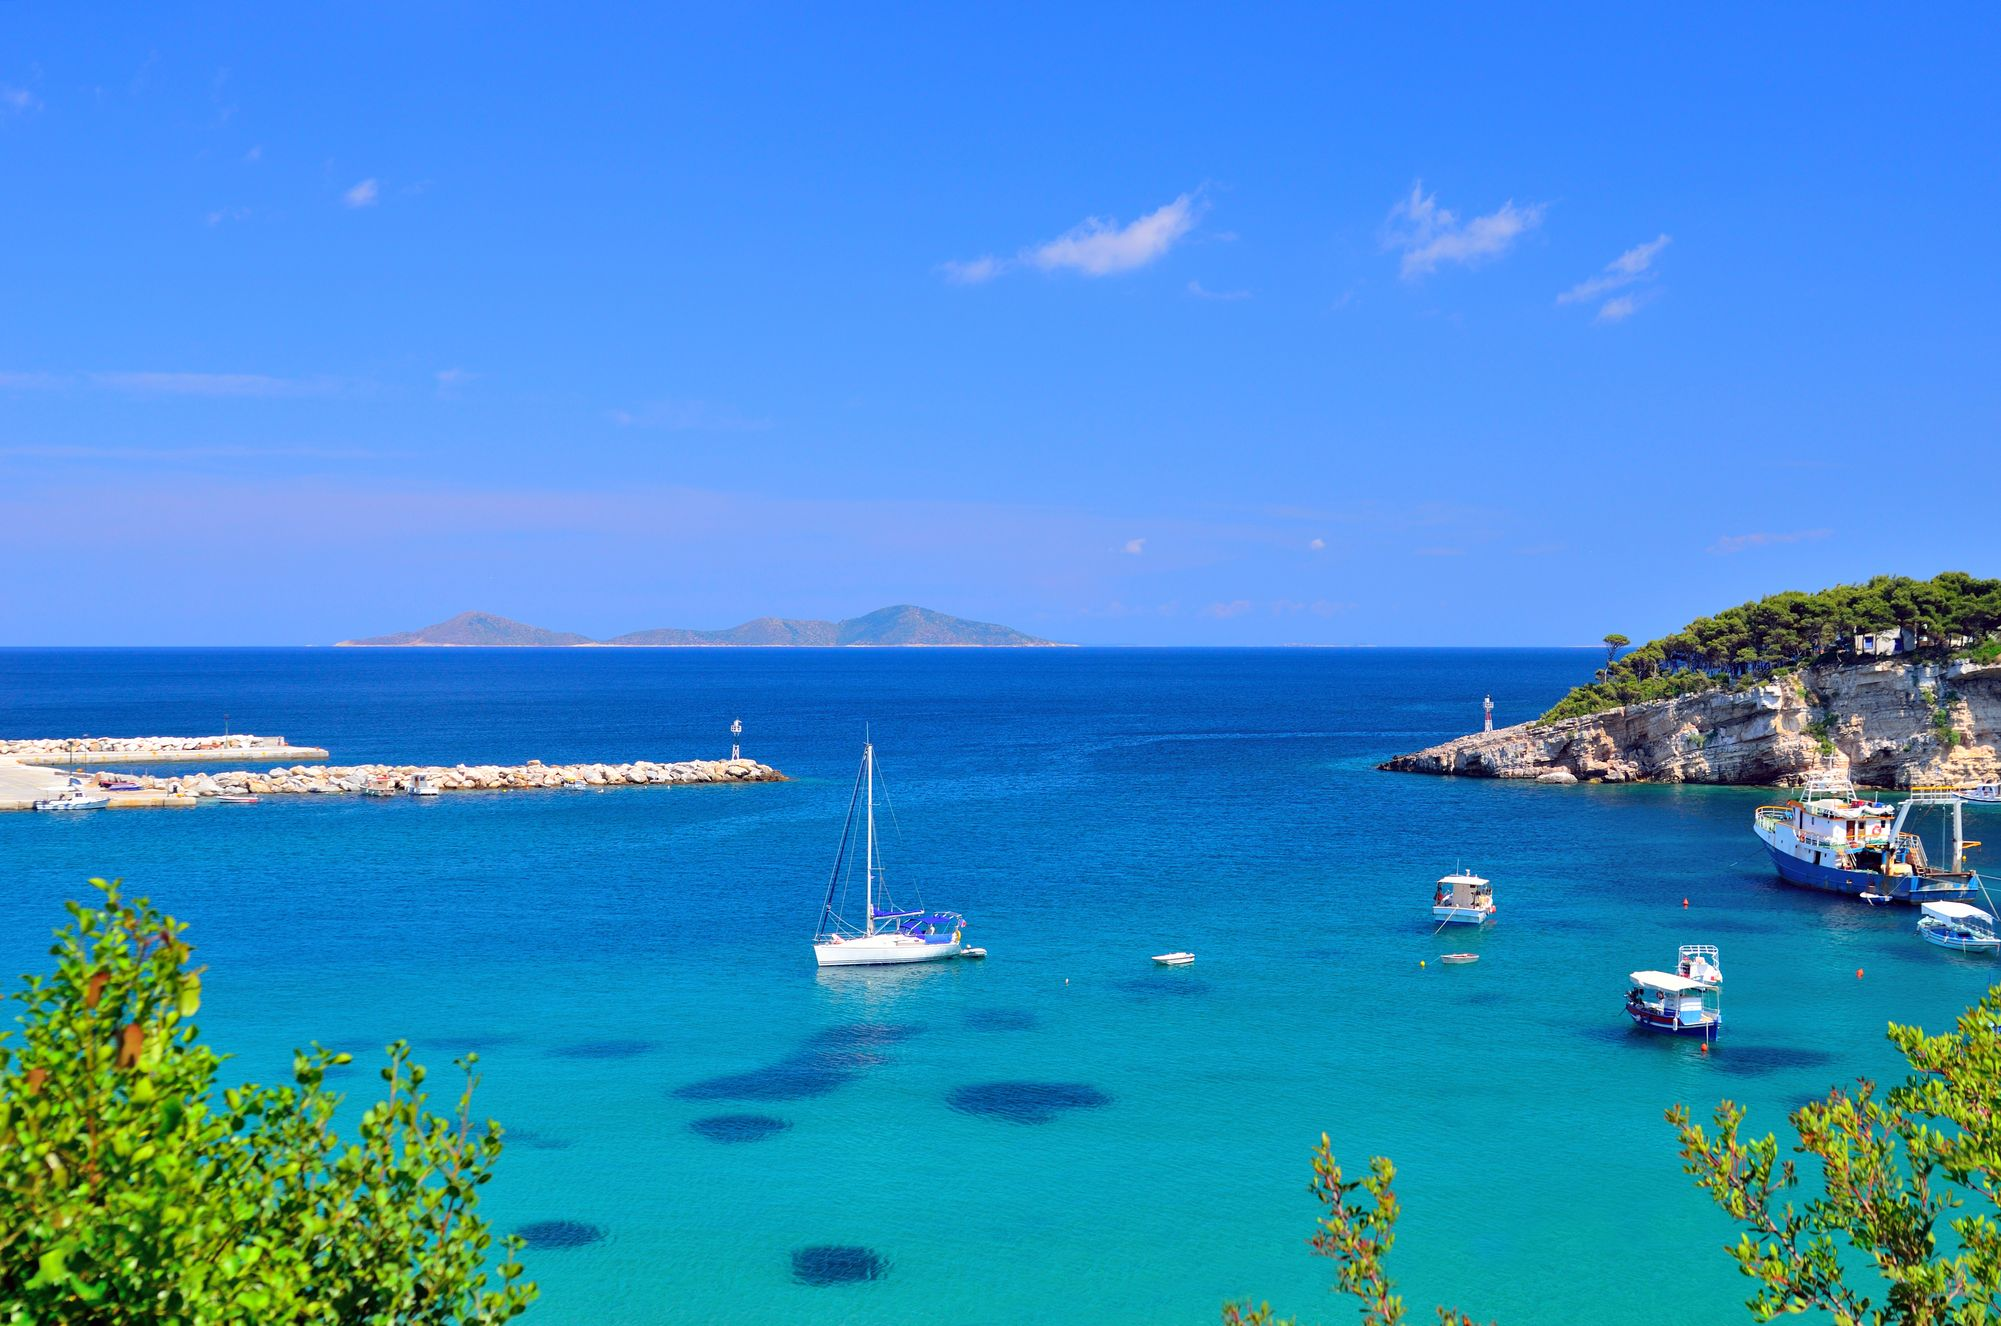 View of boats in pale blue waters in Alonissos - best Greek islands to visit in summer